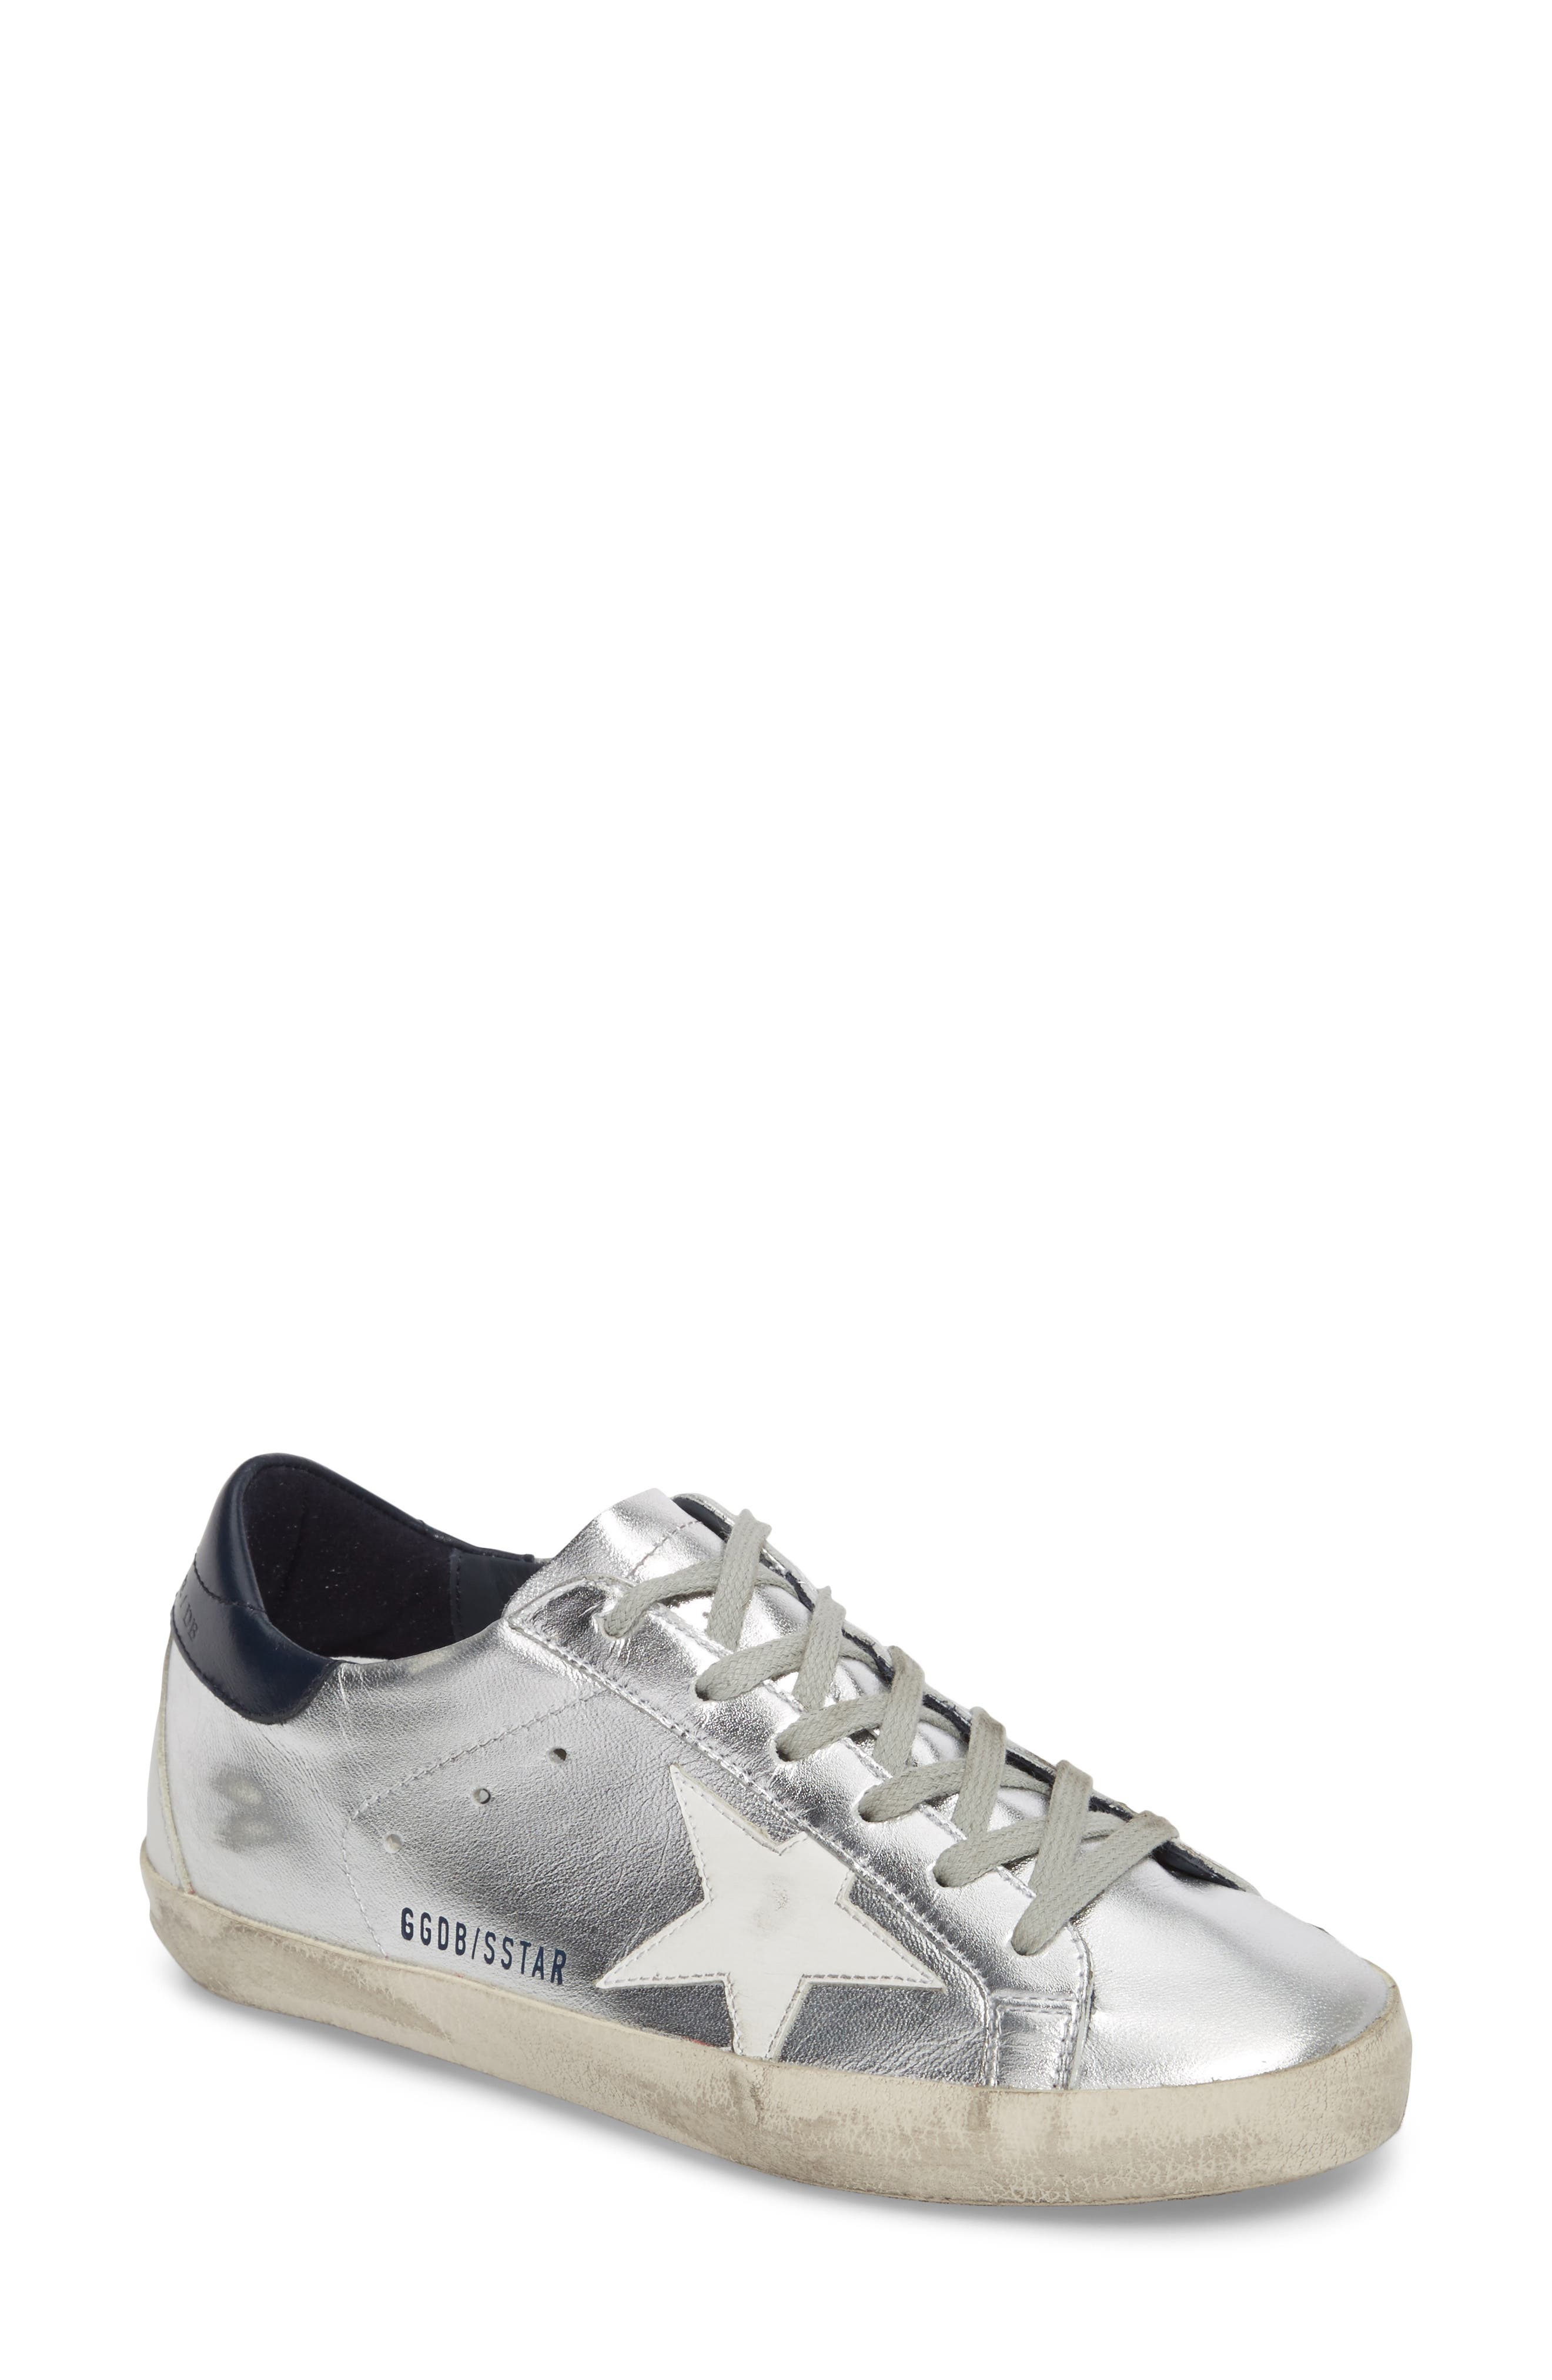 Superstar Metallic Low Top Sneaker,                         Main,                         color, 040